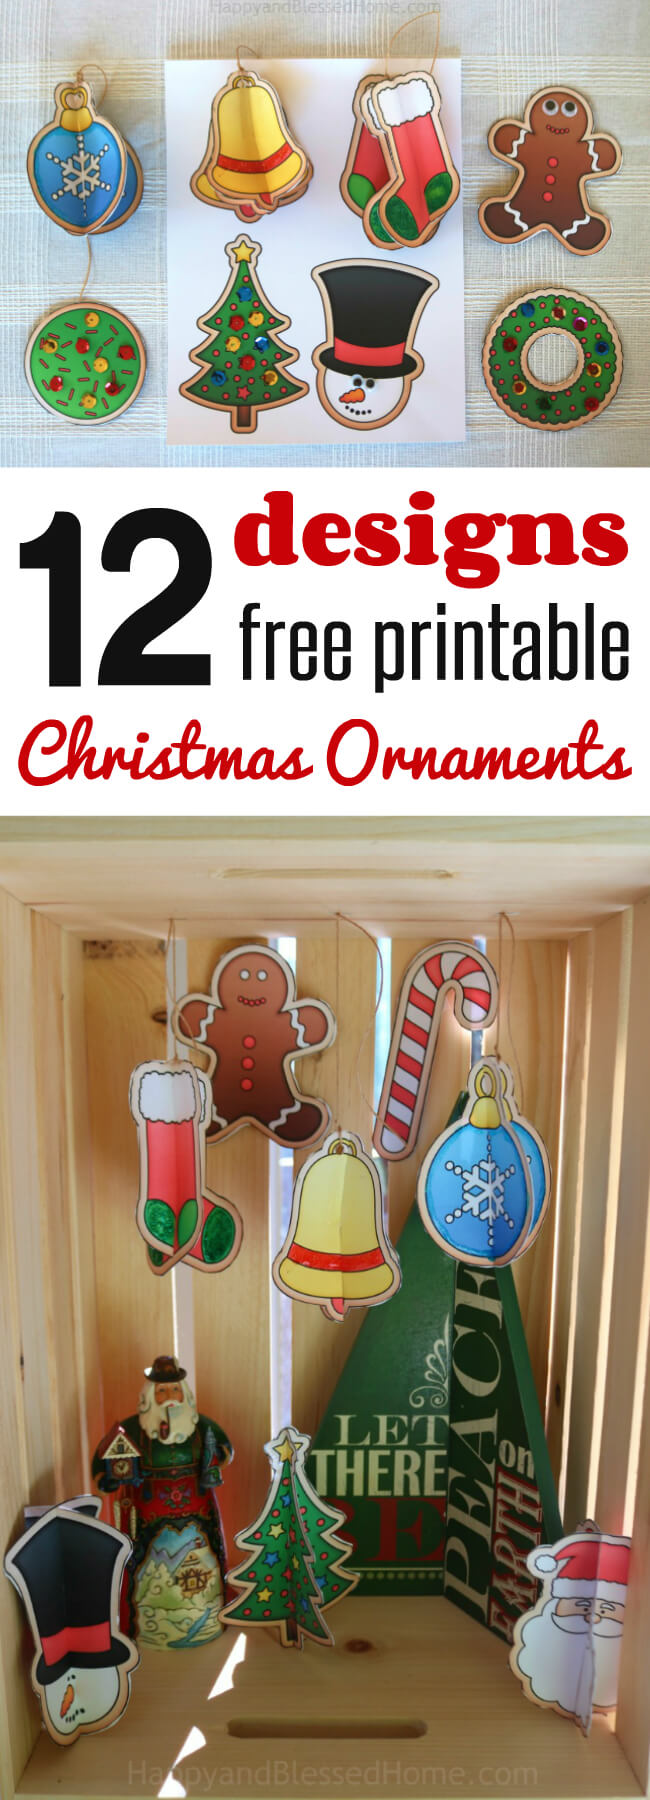 Printable Christmas Ornaments.12 Free Christmas Ornaments Printables And A Christmas Craft